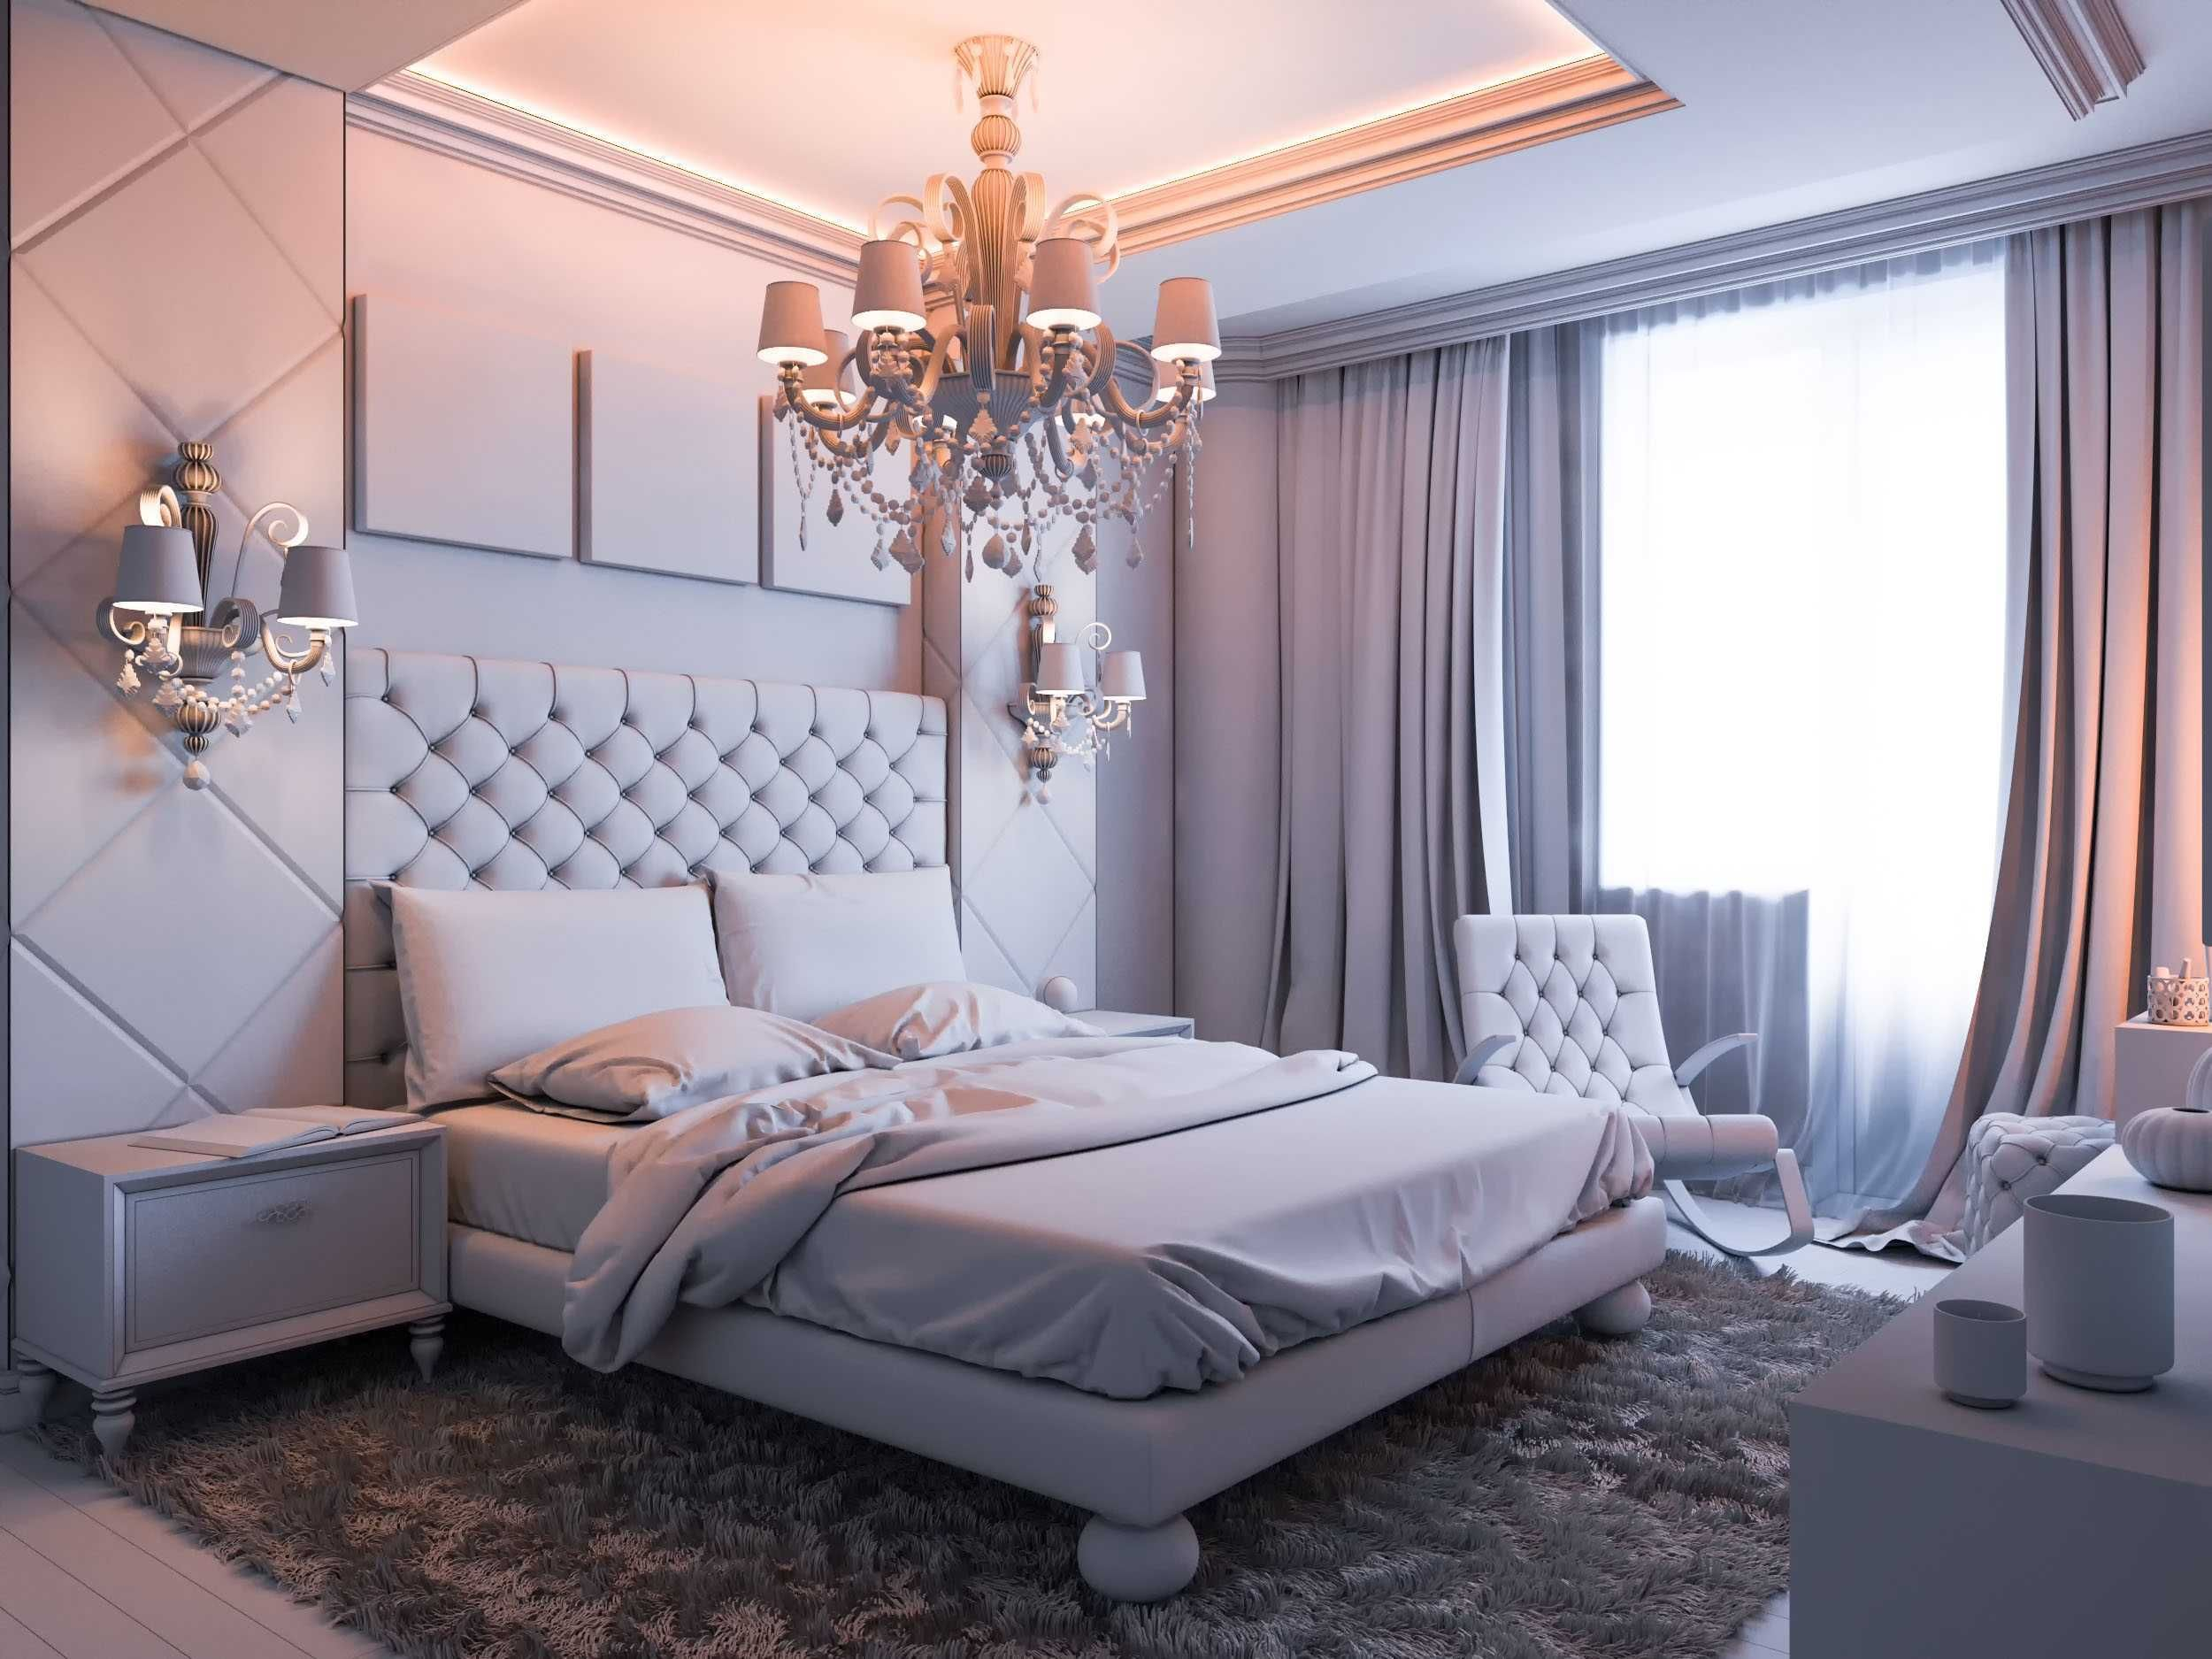 25 Beautiful Romantic Bedroom Ideas For Valentines Bedroom Designs For Couples Romantic Bedroom Design Bedroom Decor For Couples